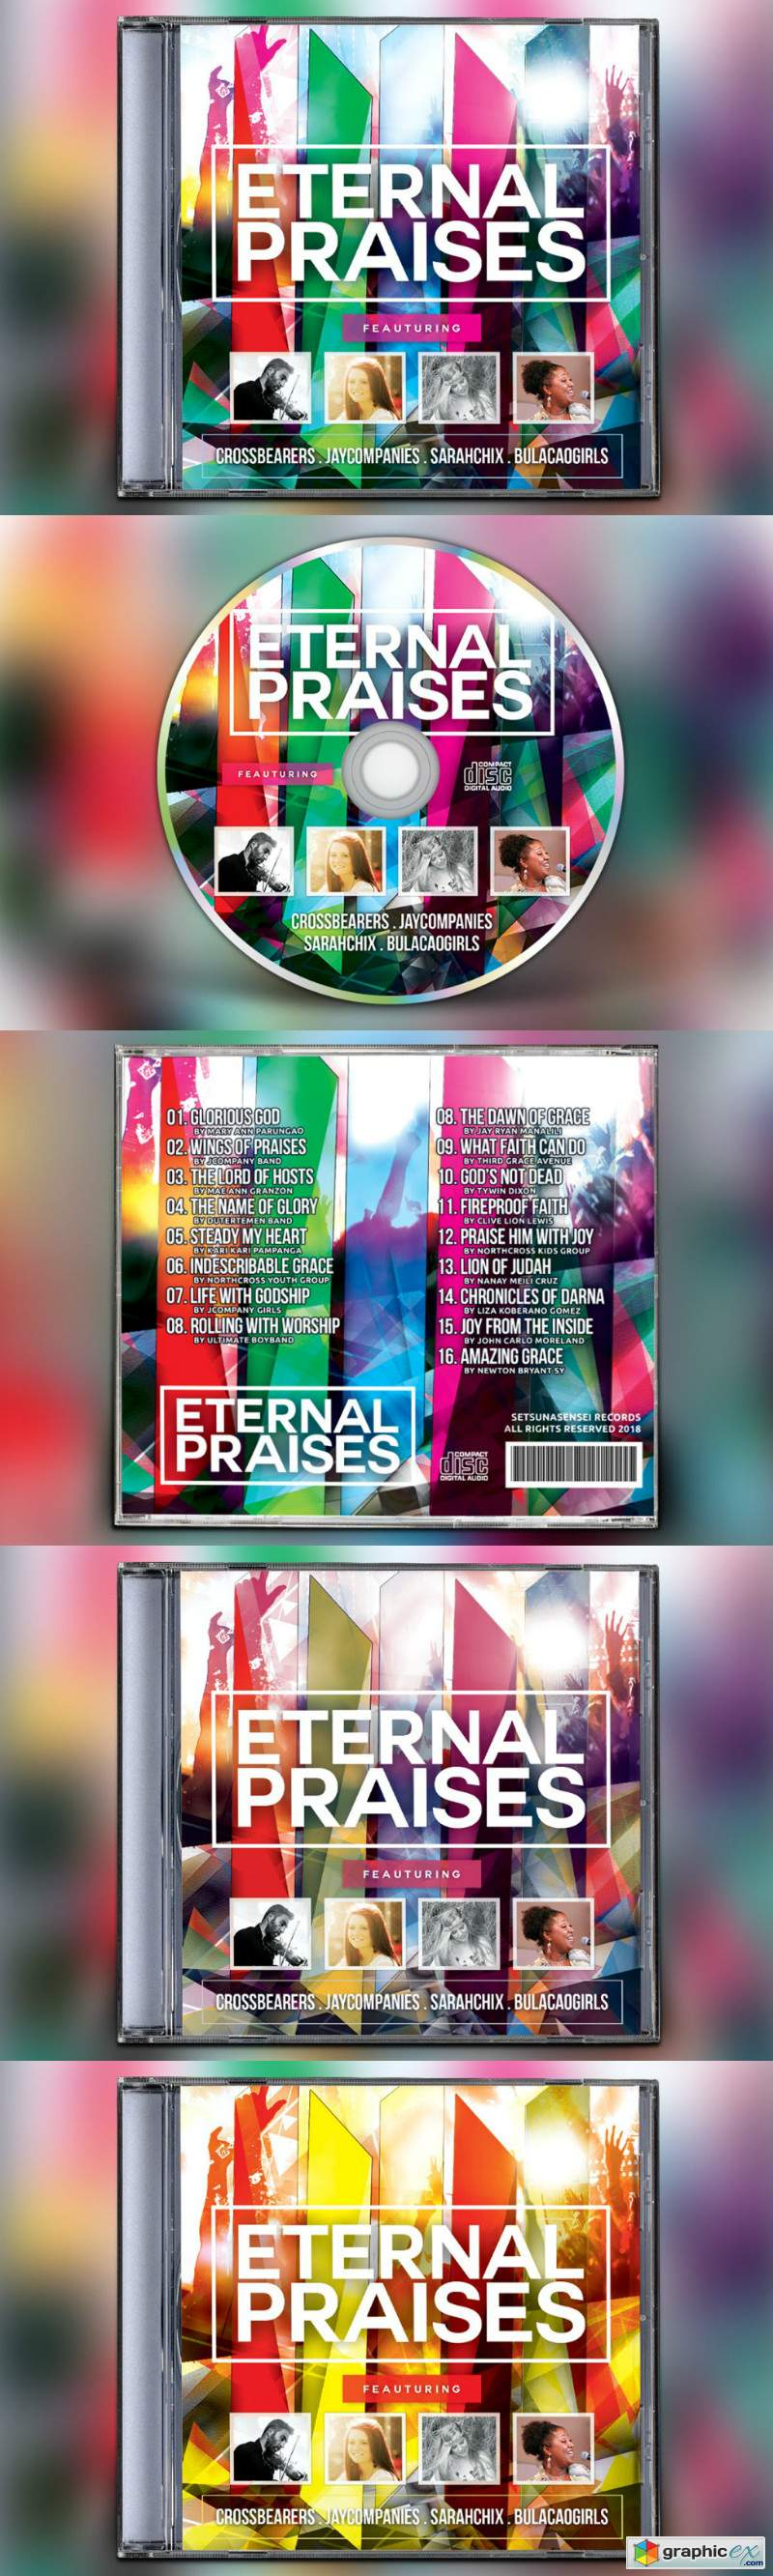 Eternal Praises CD Album Artwork